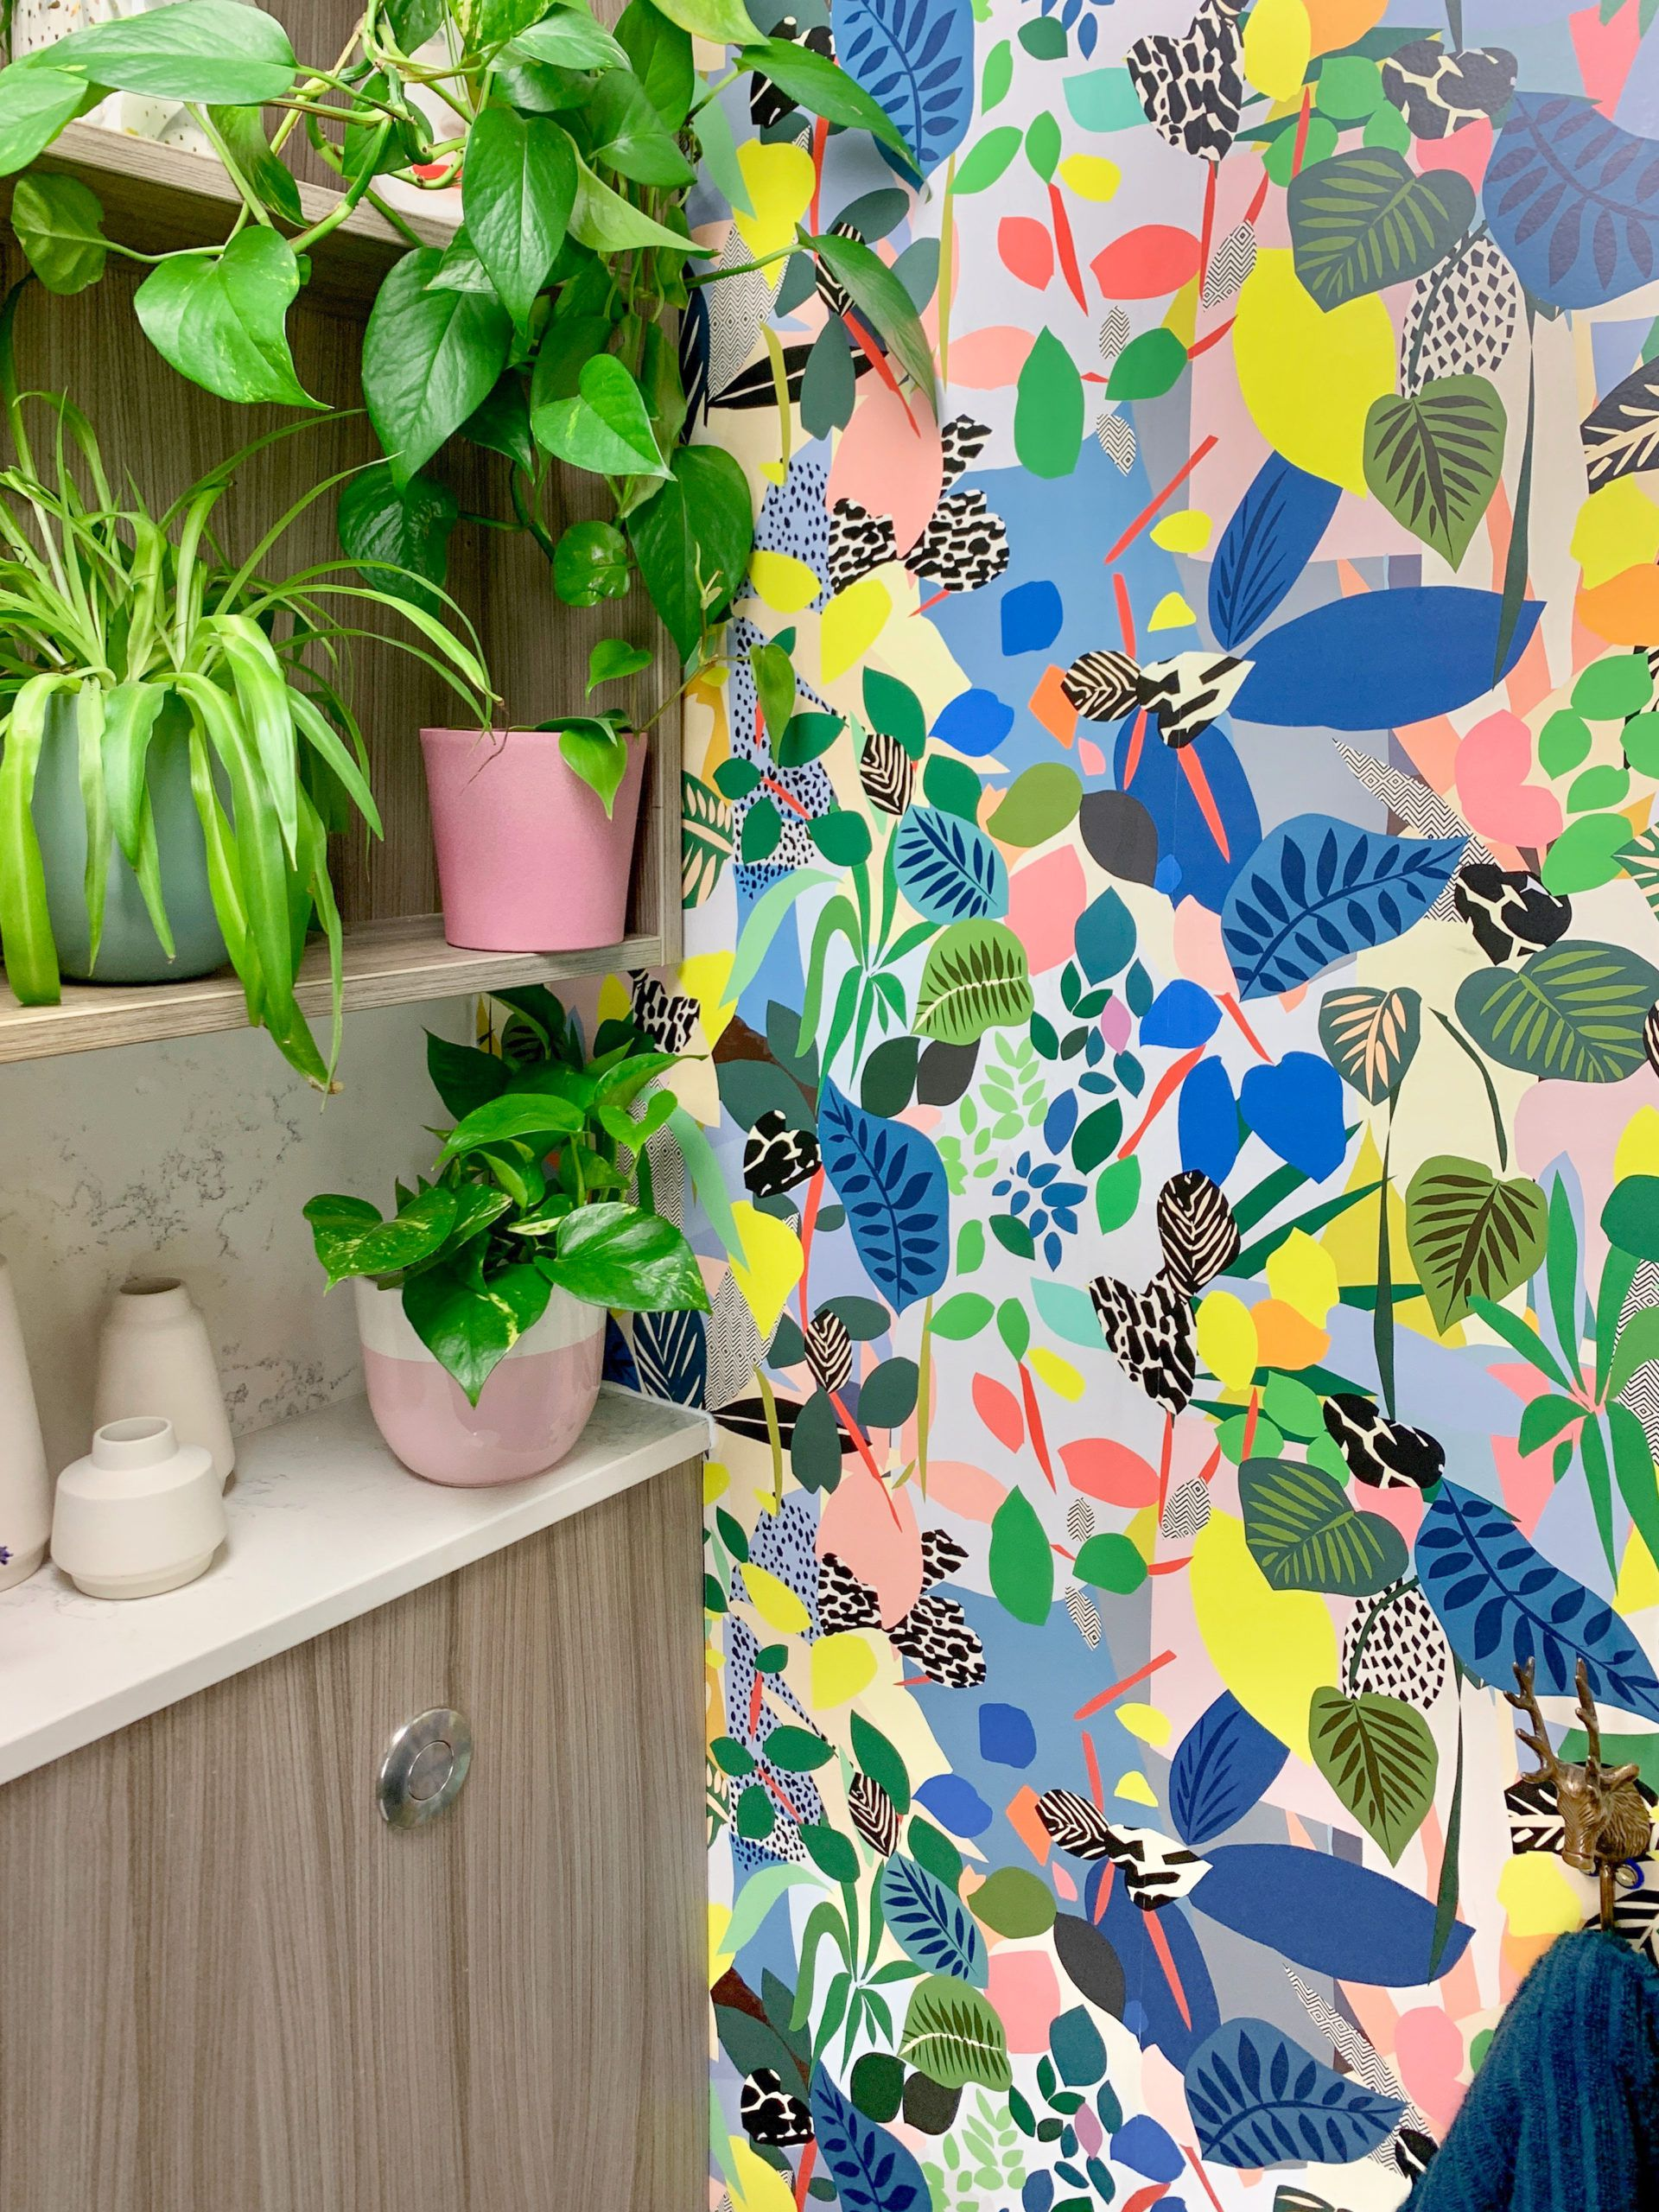 Hockney Wallpaper • Kitty McCall • Nikki Edwards • This E17 Life • Powder Room • Colorful Wallpaper